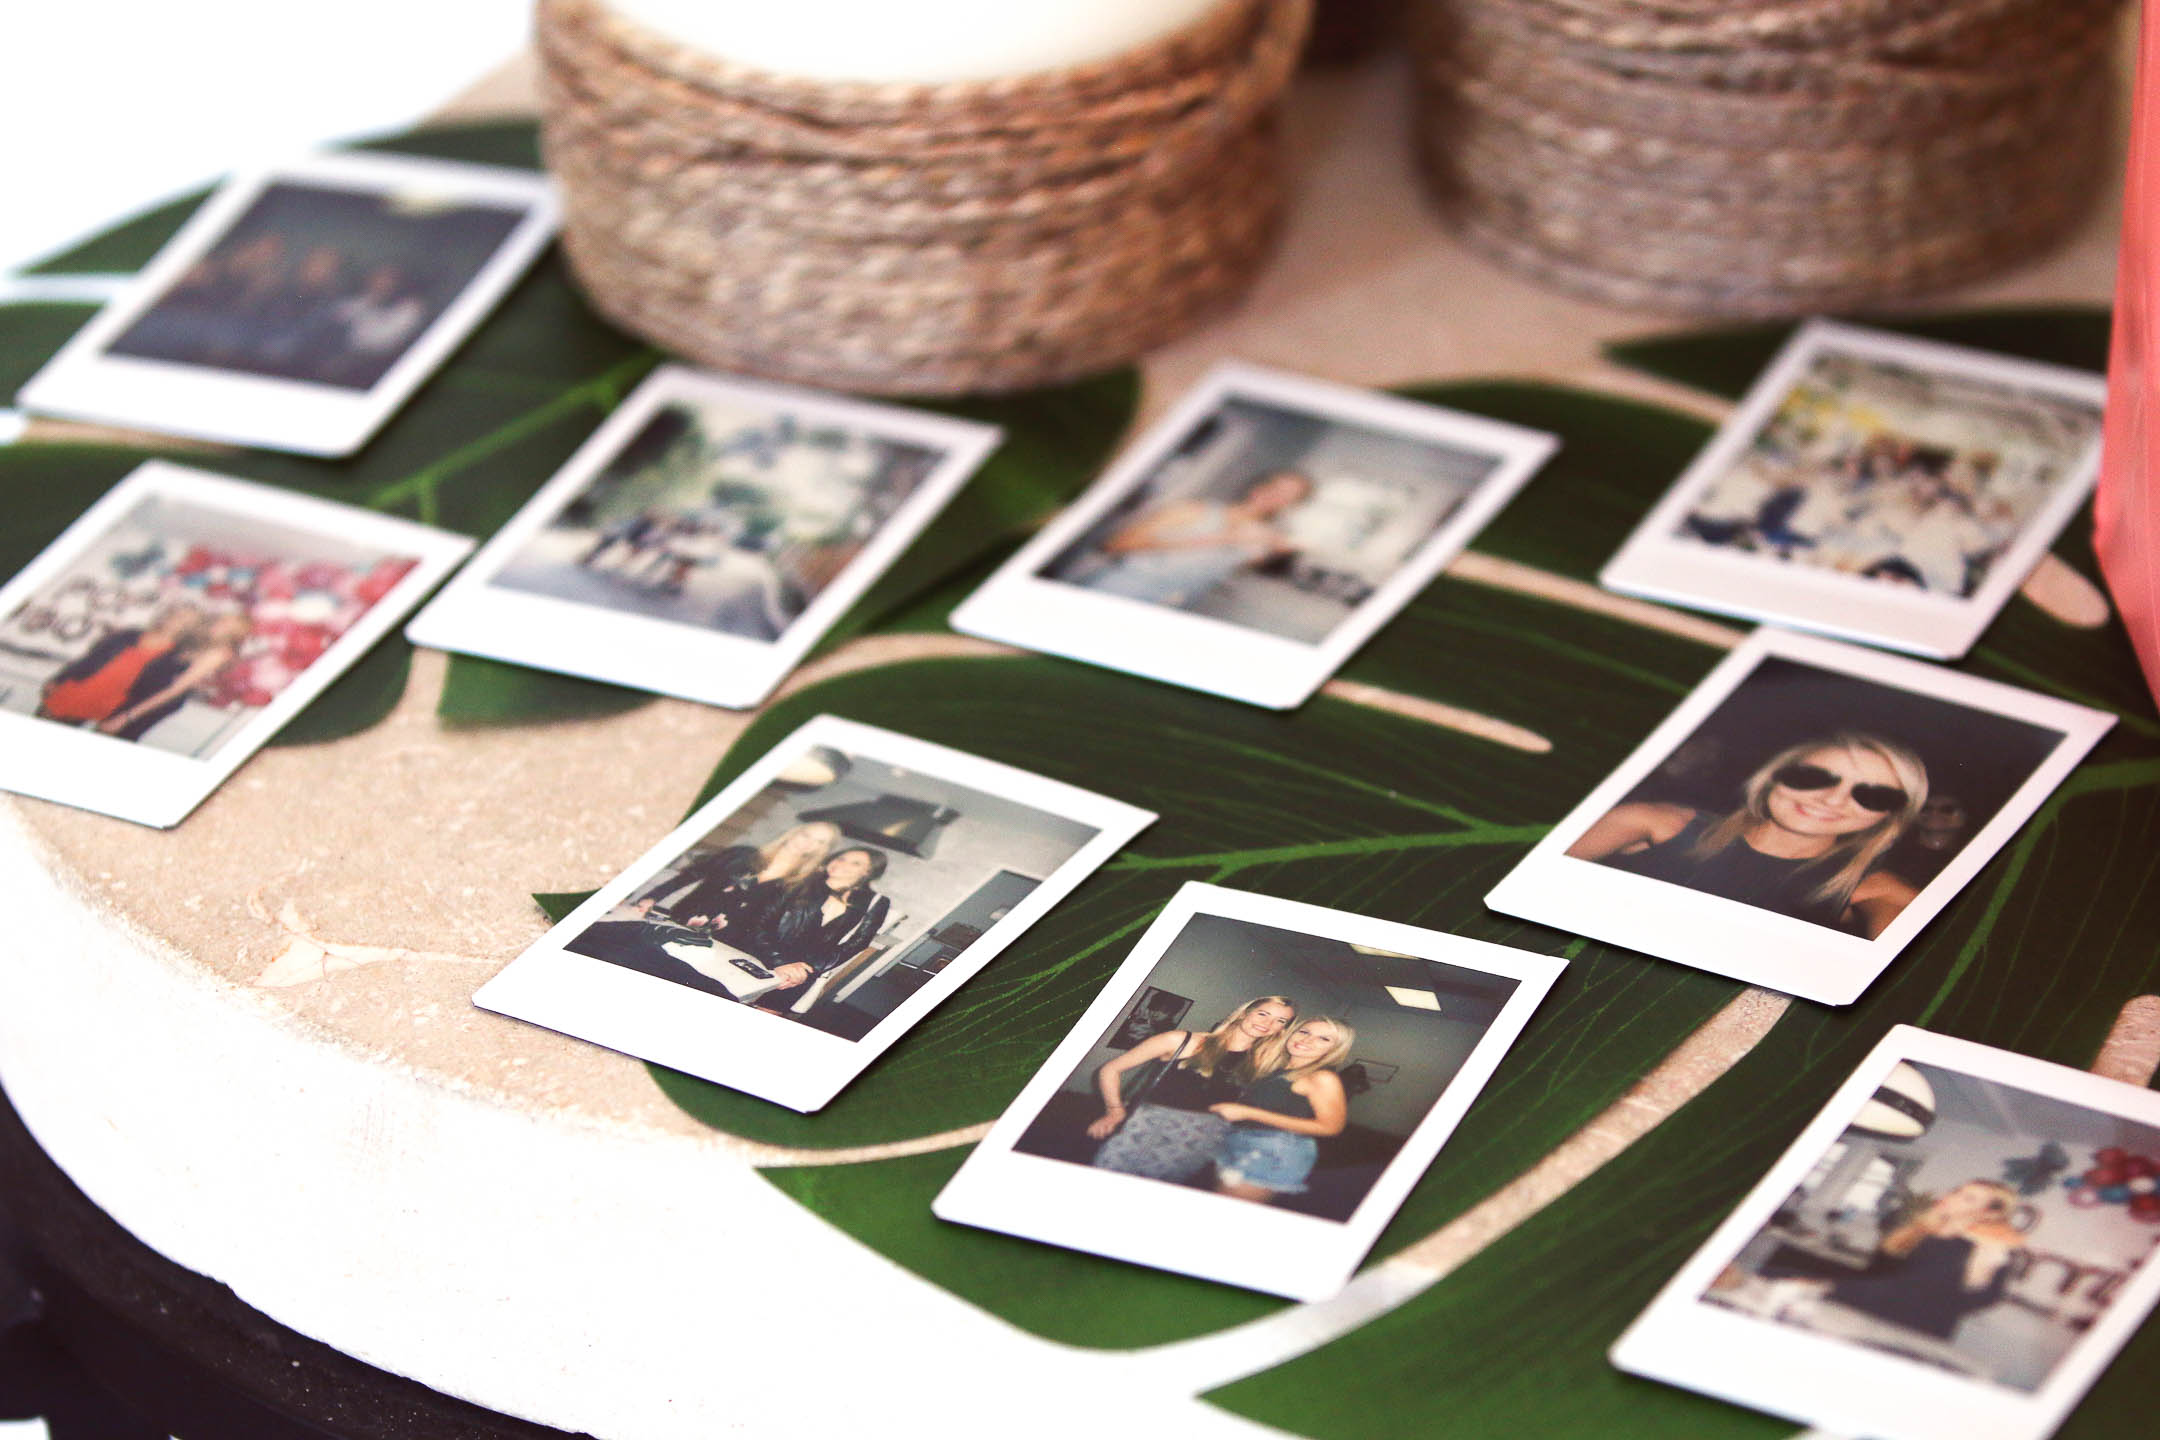 polaroid camera shots from a 30th birthday party